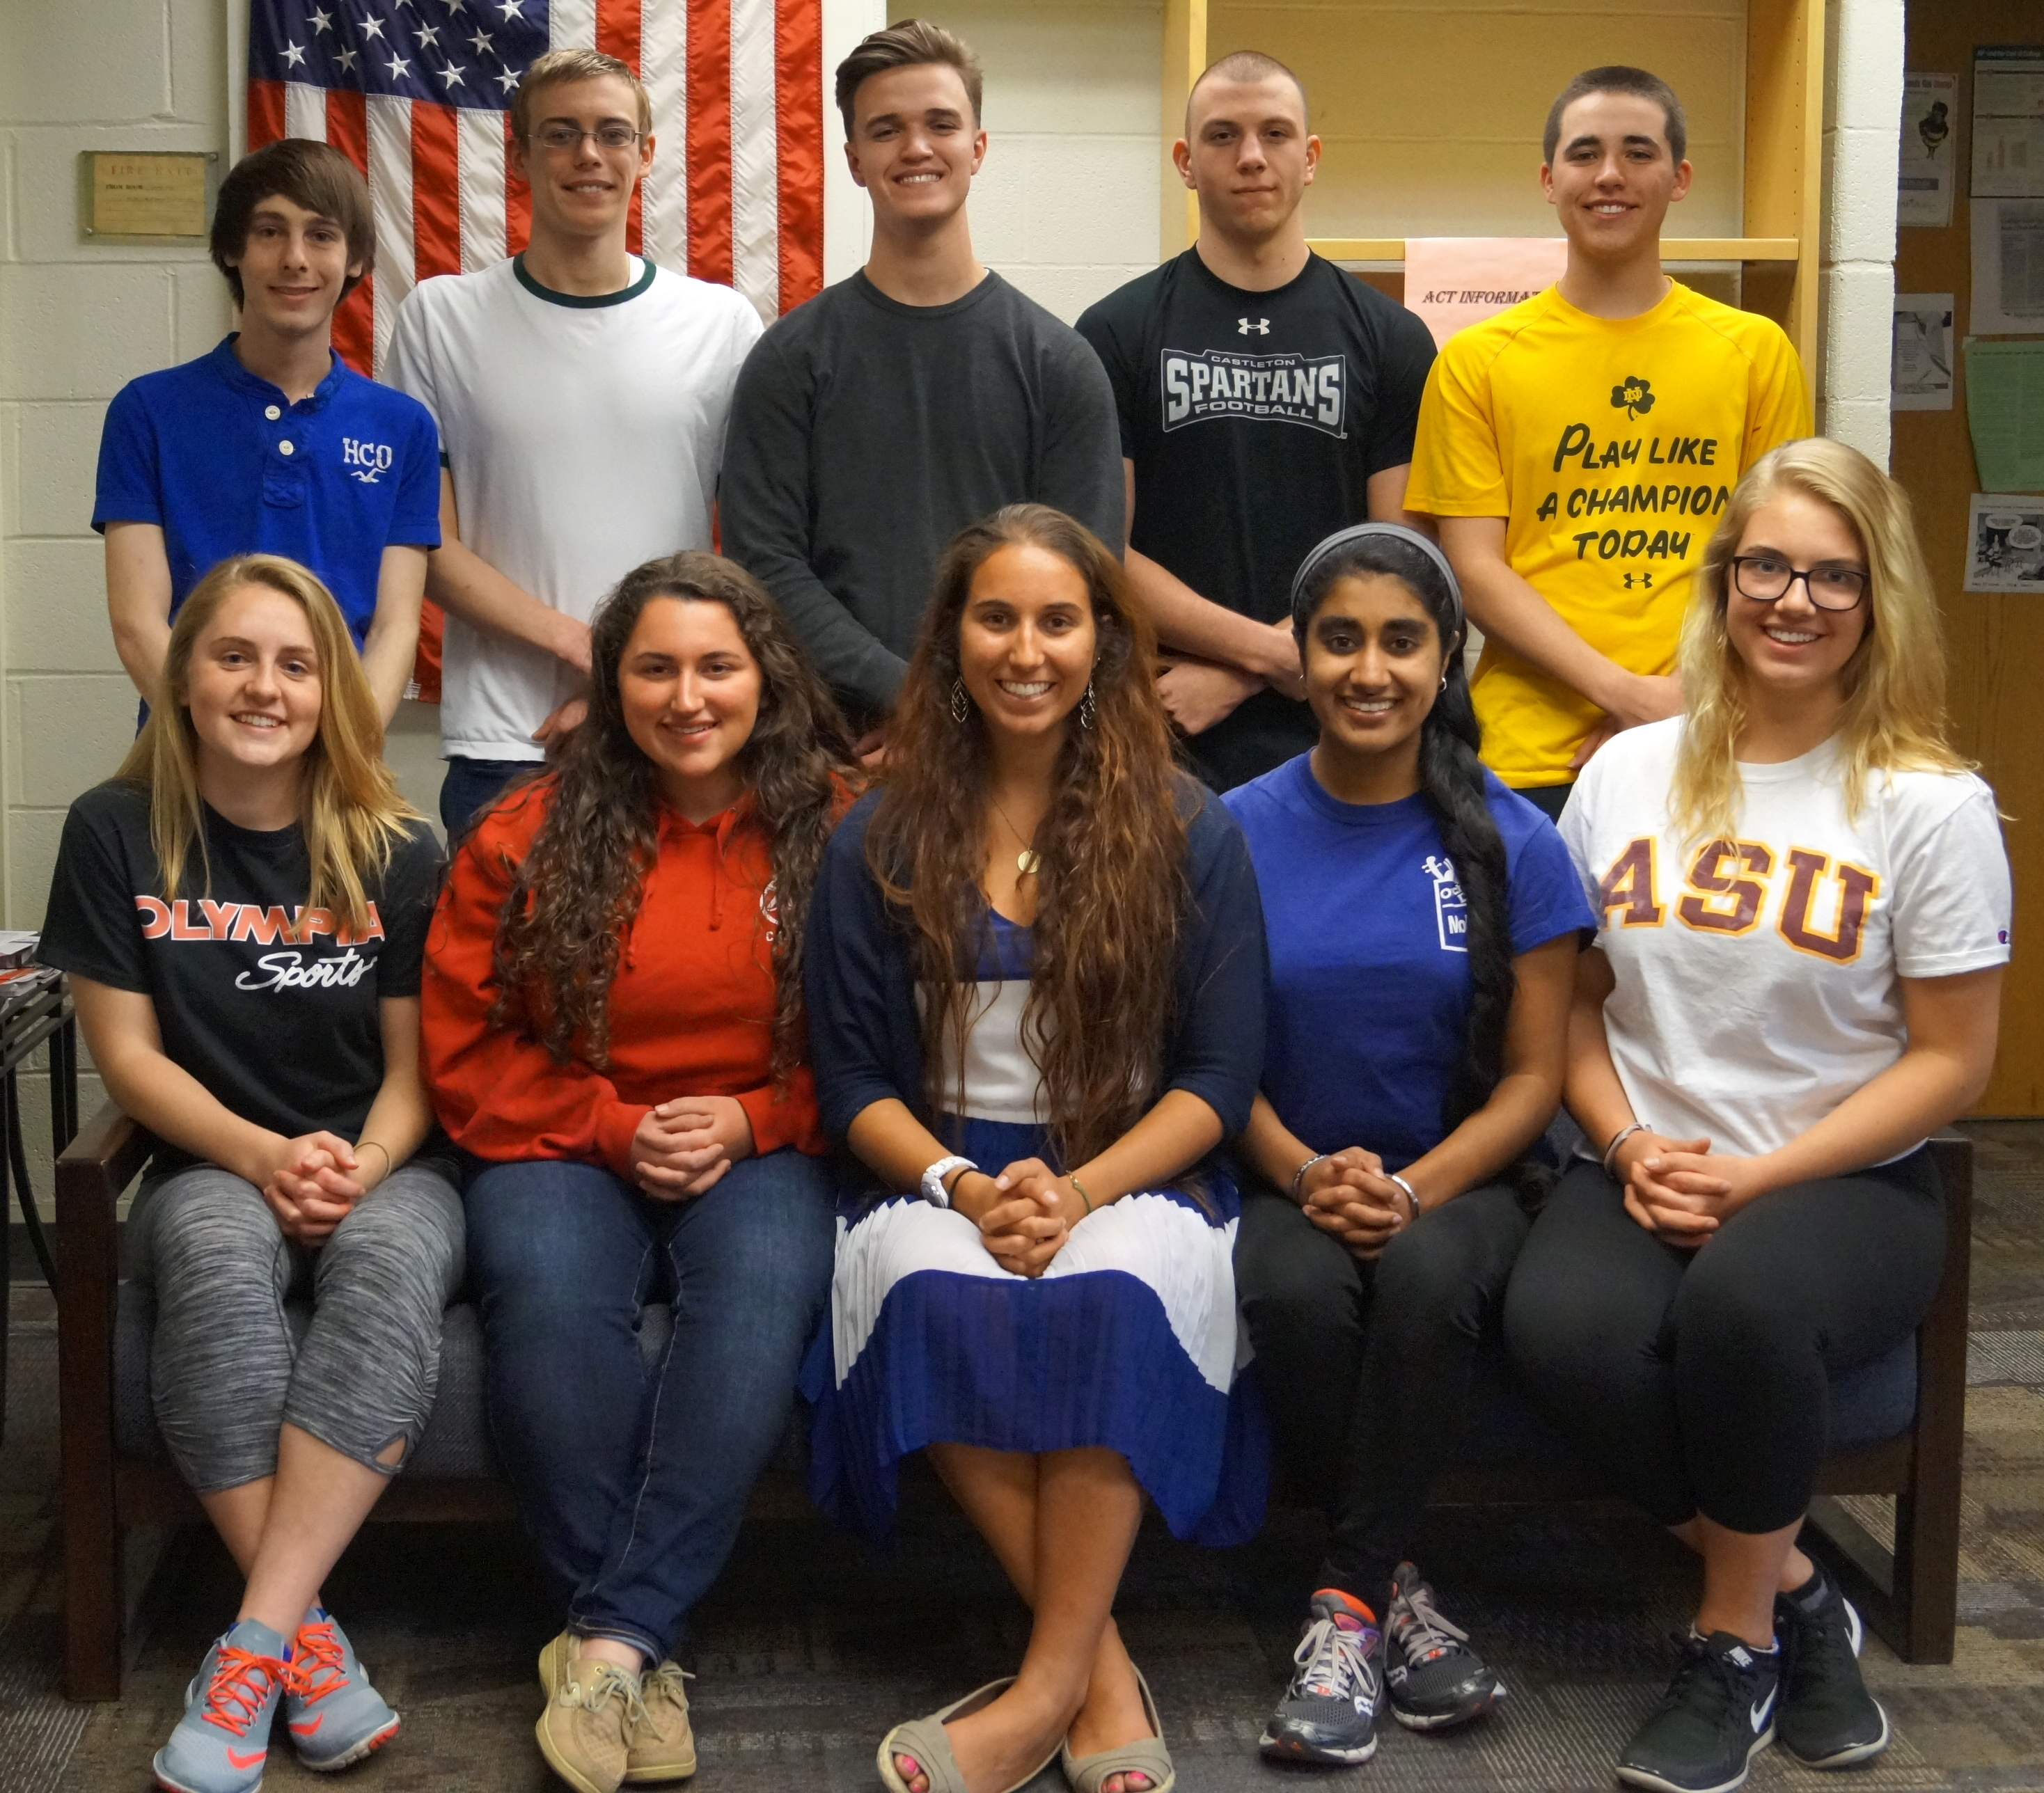 Class of 2016 Academic Top 10 graduates pose for photo